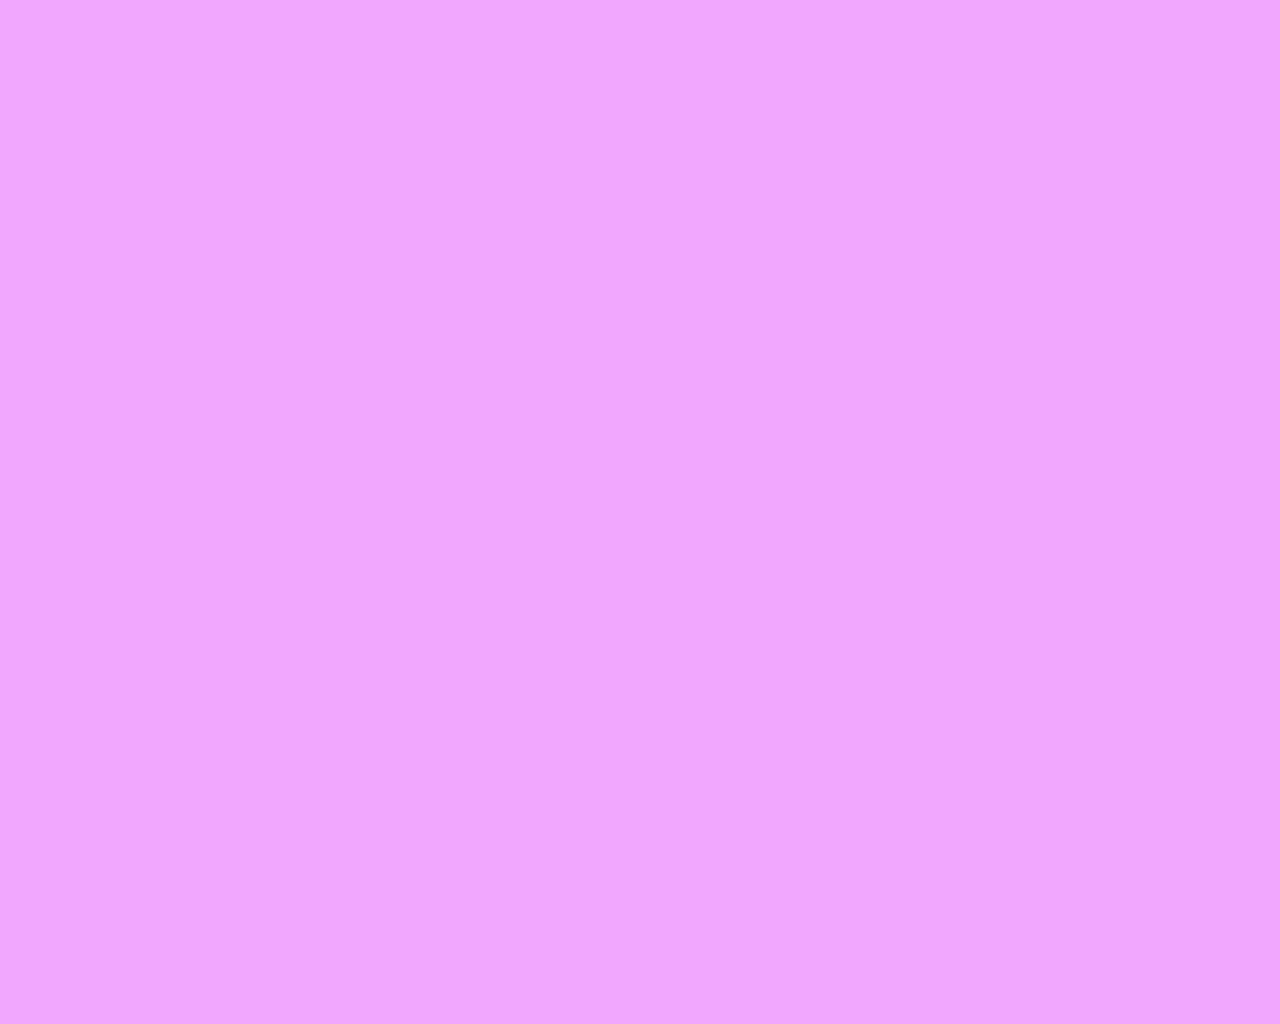 1280x1024 Rich Brilliant Lavender Solid Color Background